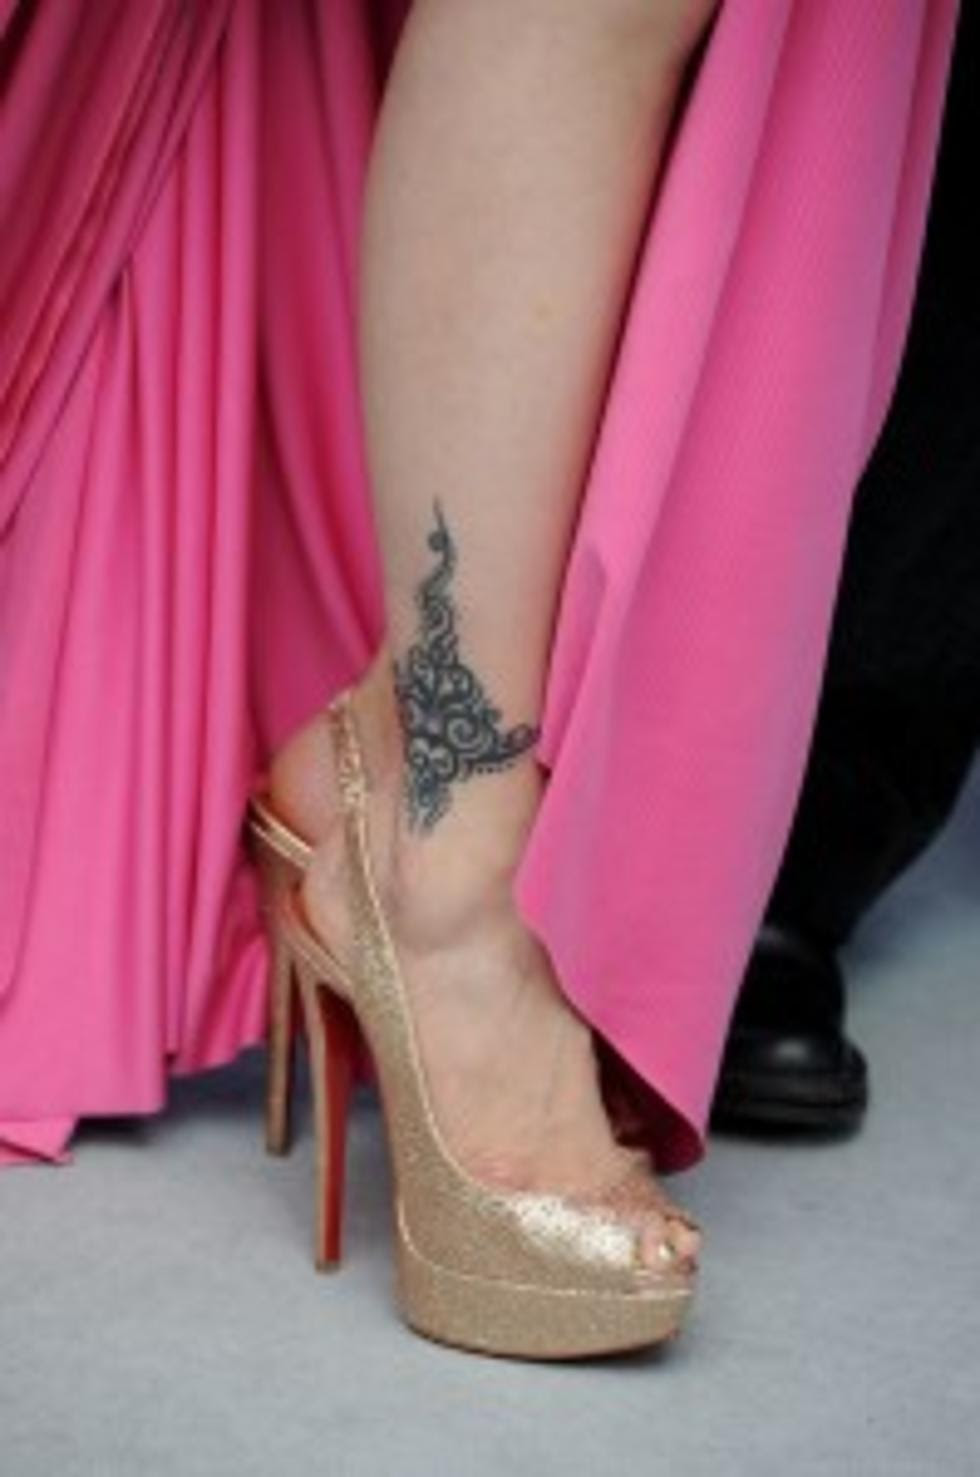 Sexiest Places For A Woman To Get A Tattoo